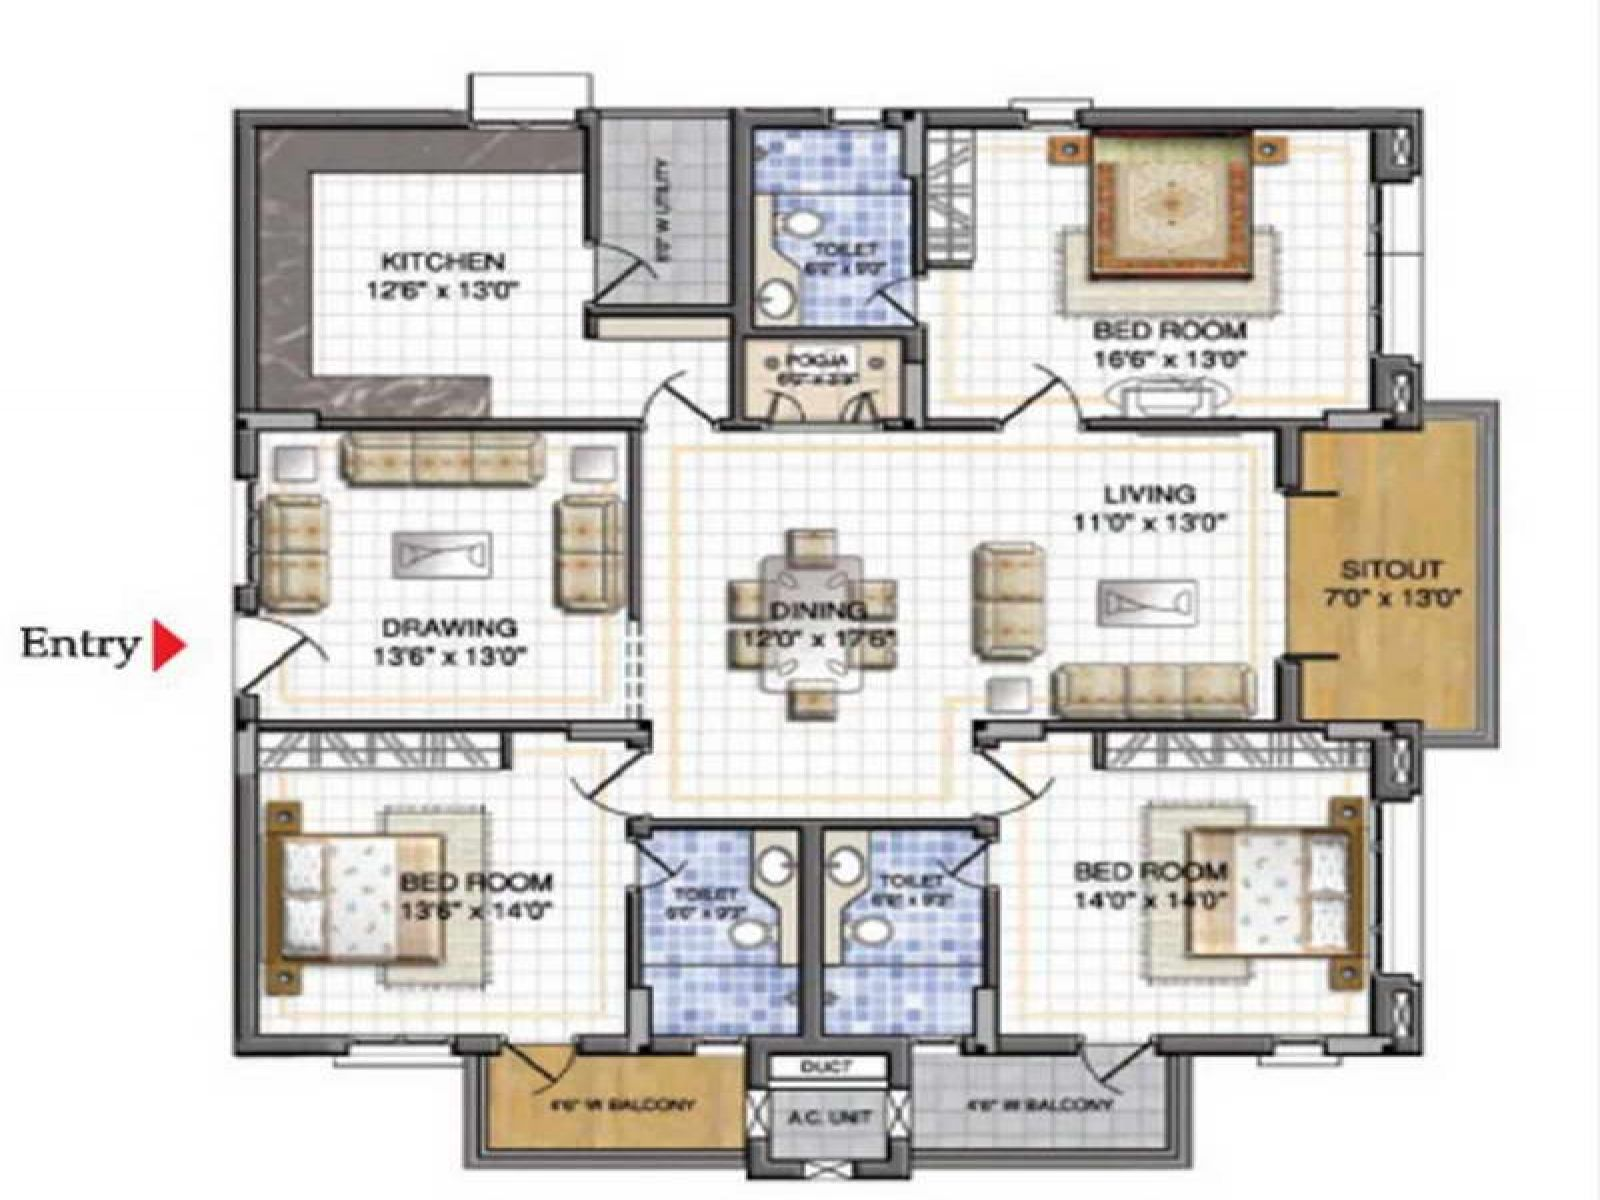 Sweet home 3d plans google search house designs pinterest layout online house plans Plan your house 3d